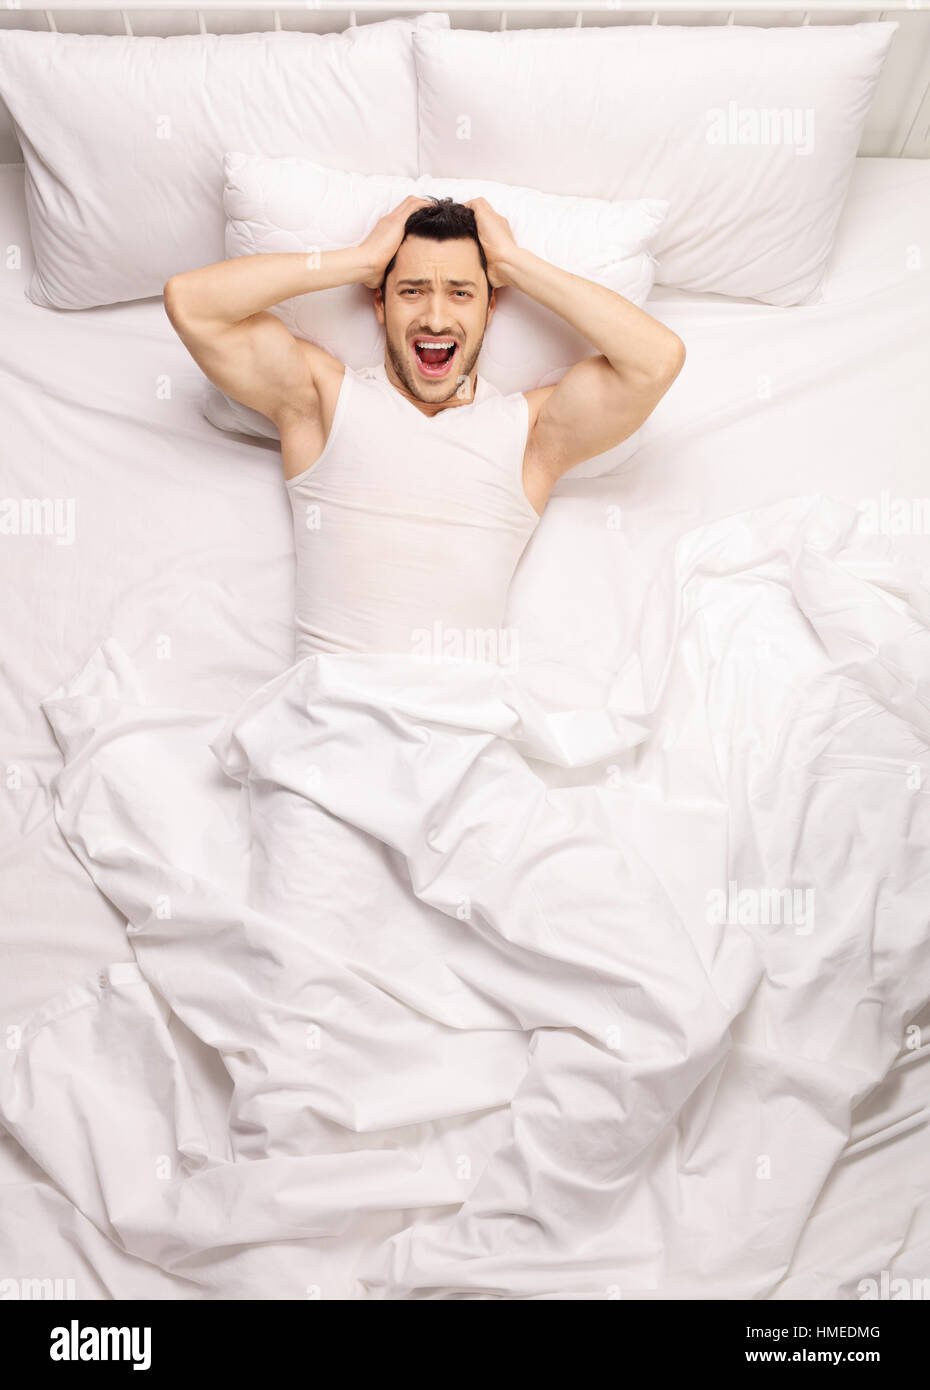 Frustrated guy lying in bed and screaming - Stock Image